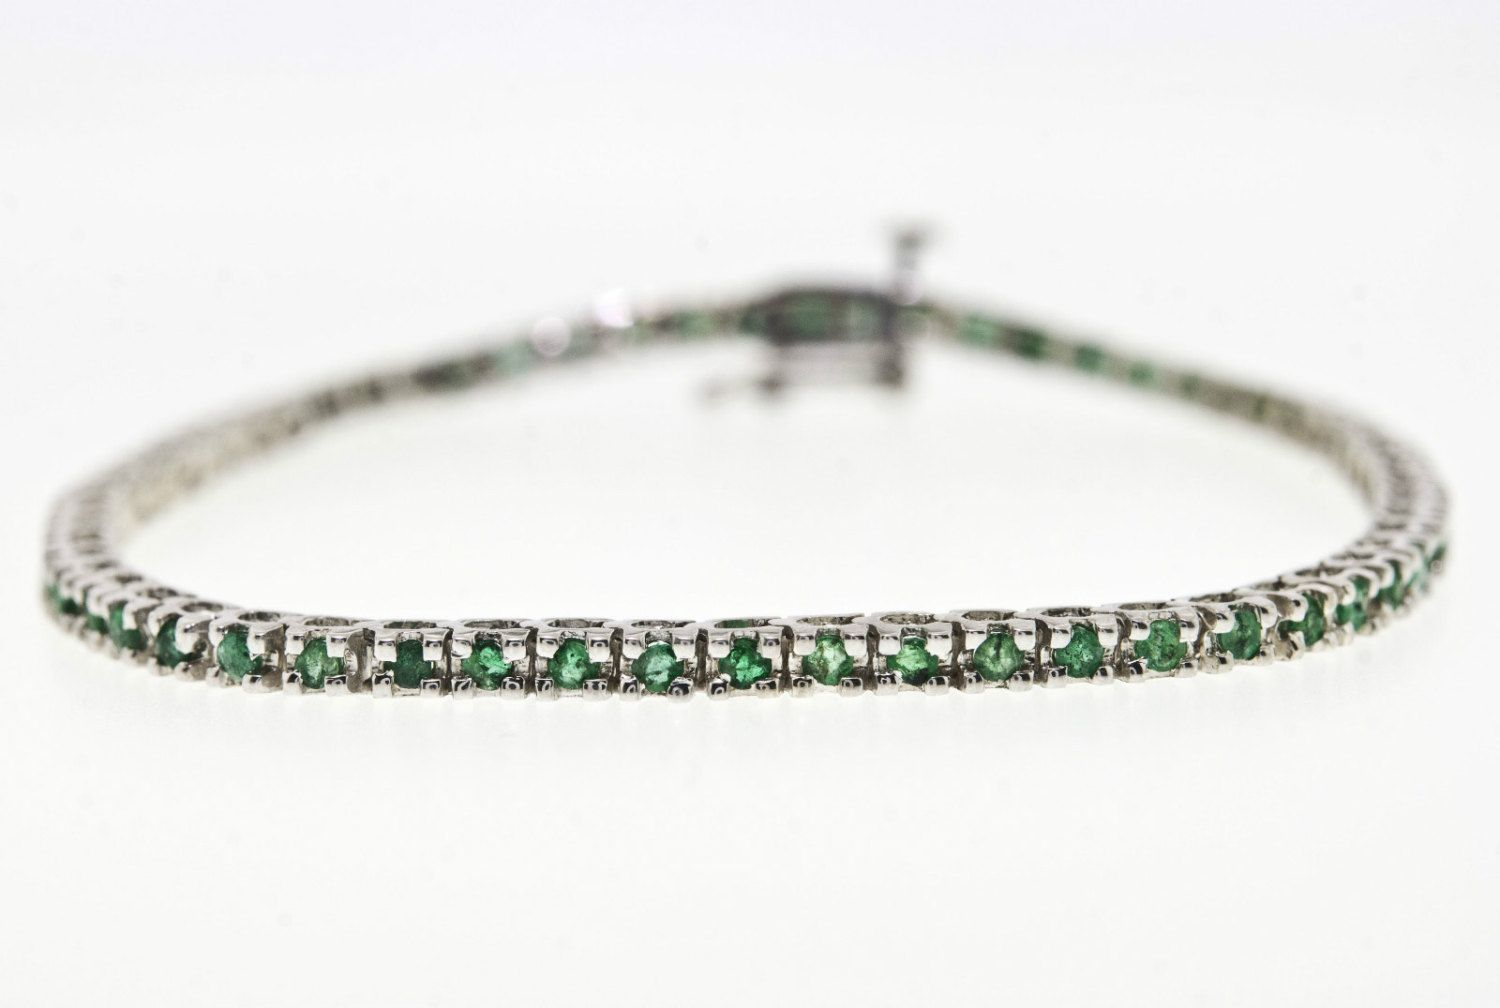 cttw emerald bracelet in k gold plated sterling silver on